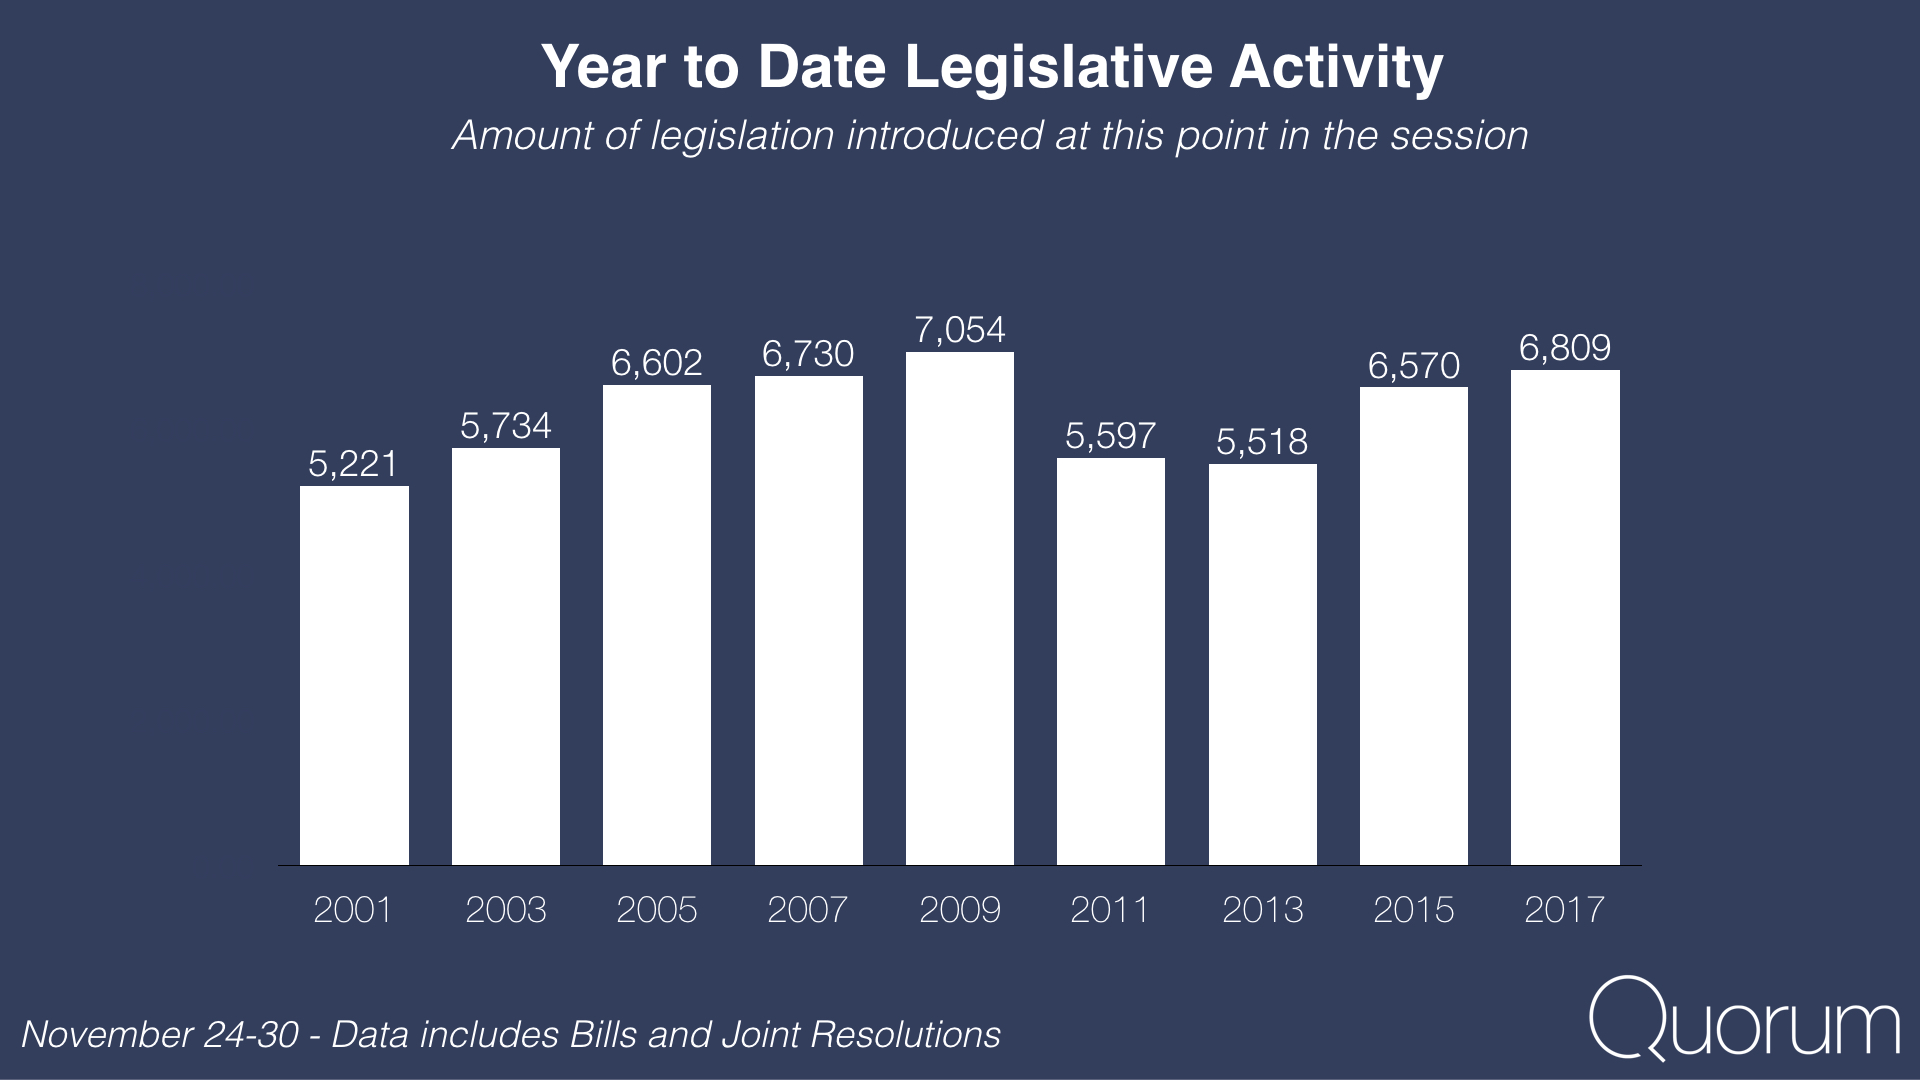 Year to date legislative activity